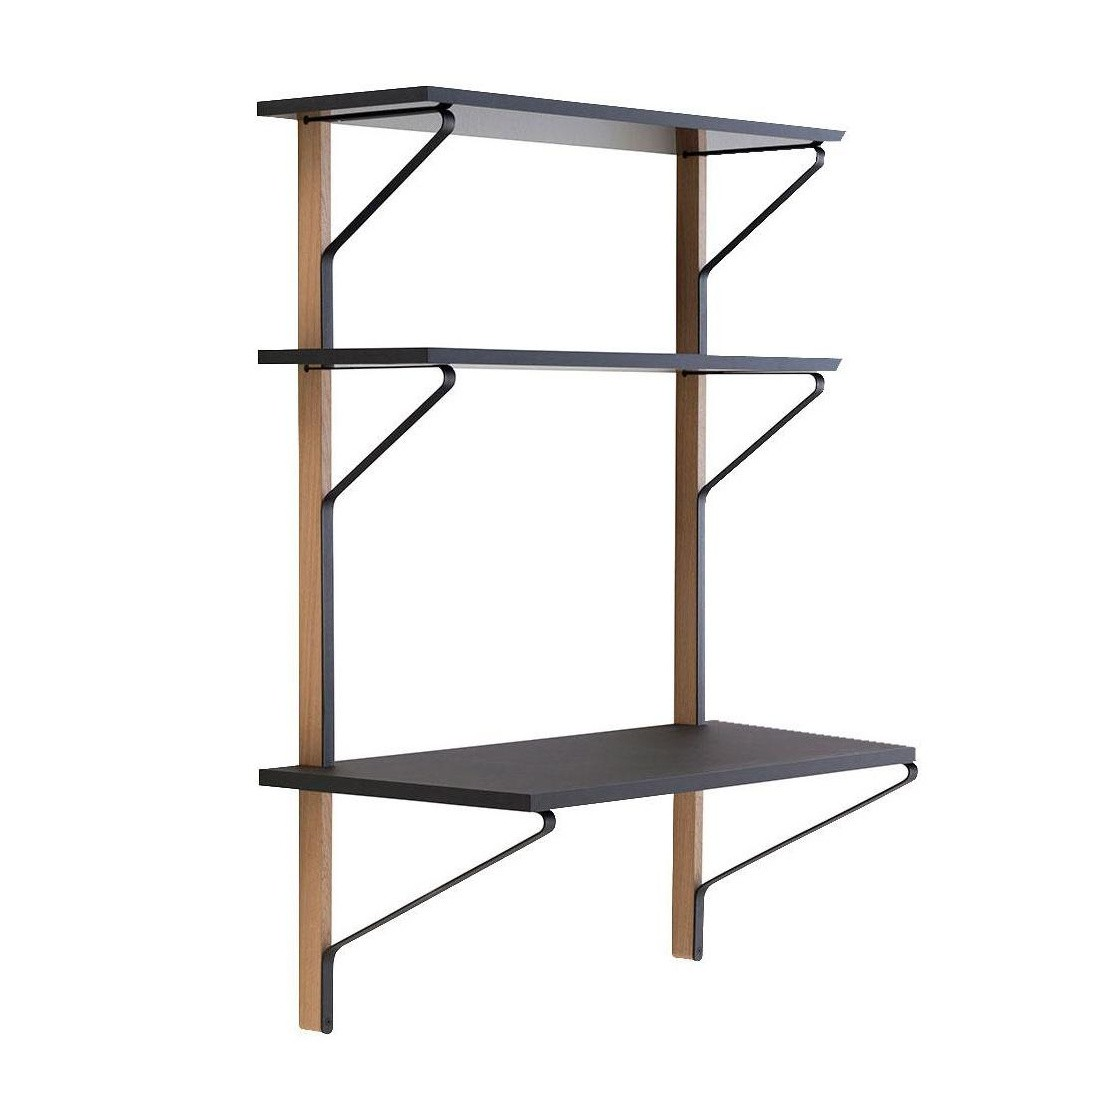 Wall To Wall Shelves artek kaari reb013 wall shelf with desk | ambientedirect